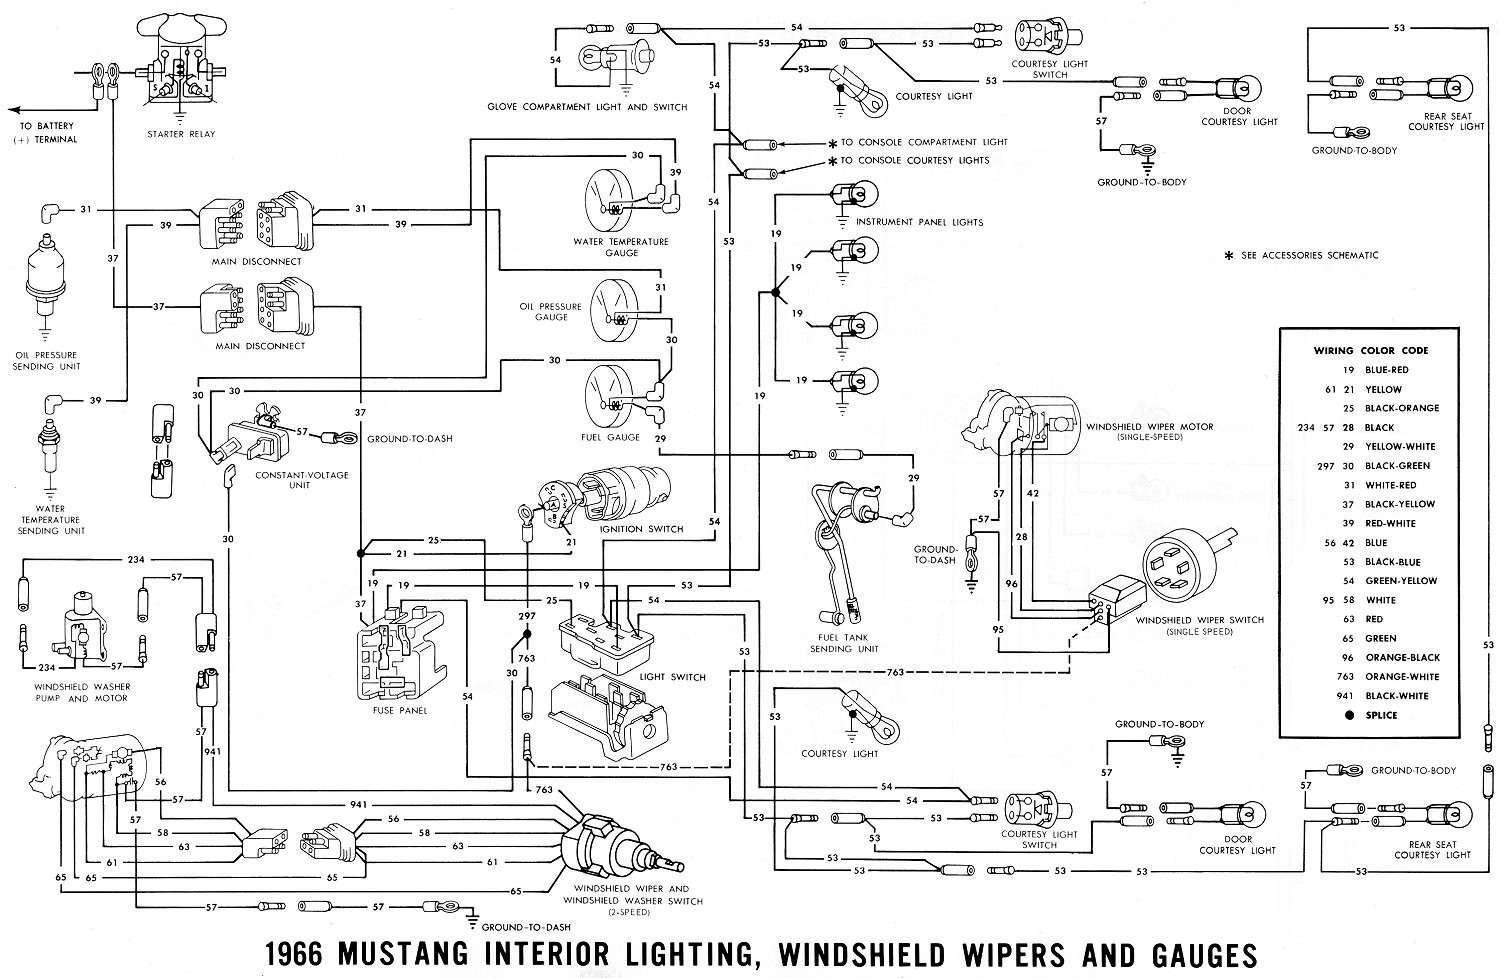 67 mustang wiring diagram inspirational wiring diagram image rh mainetreasurechest com 67 Mustang Alternator Wiring Diagram 67 Mustang Alternator Wiring Diagram